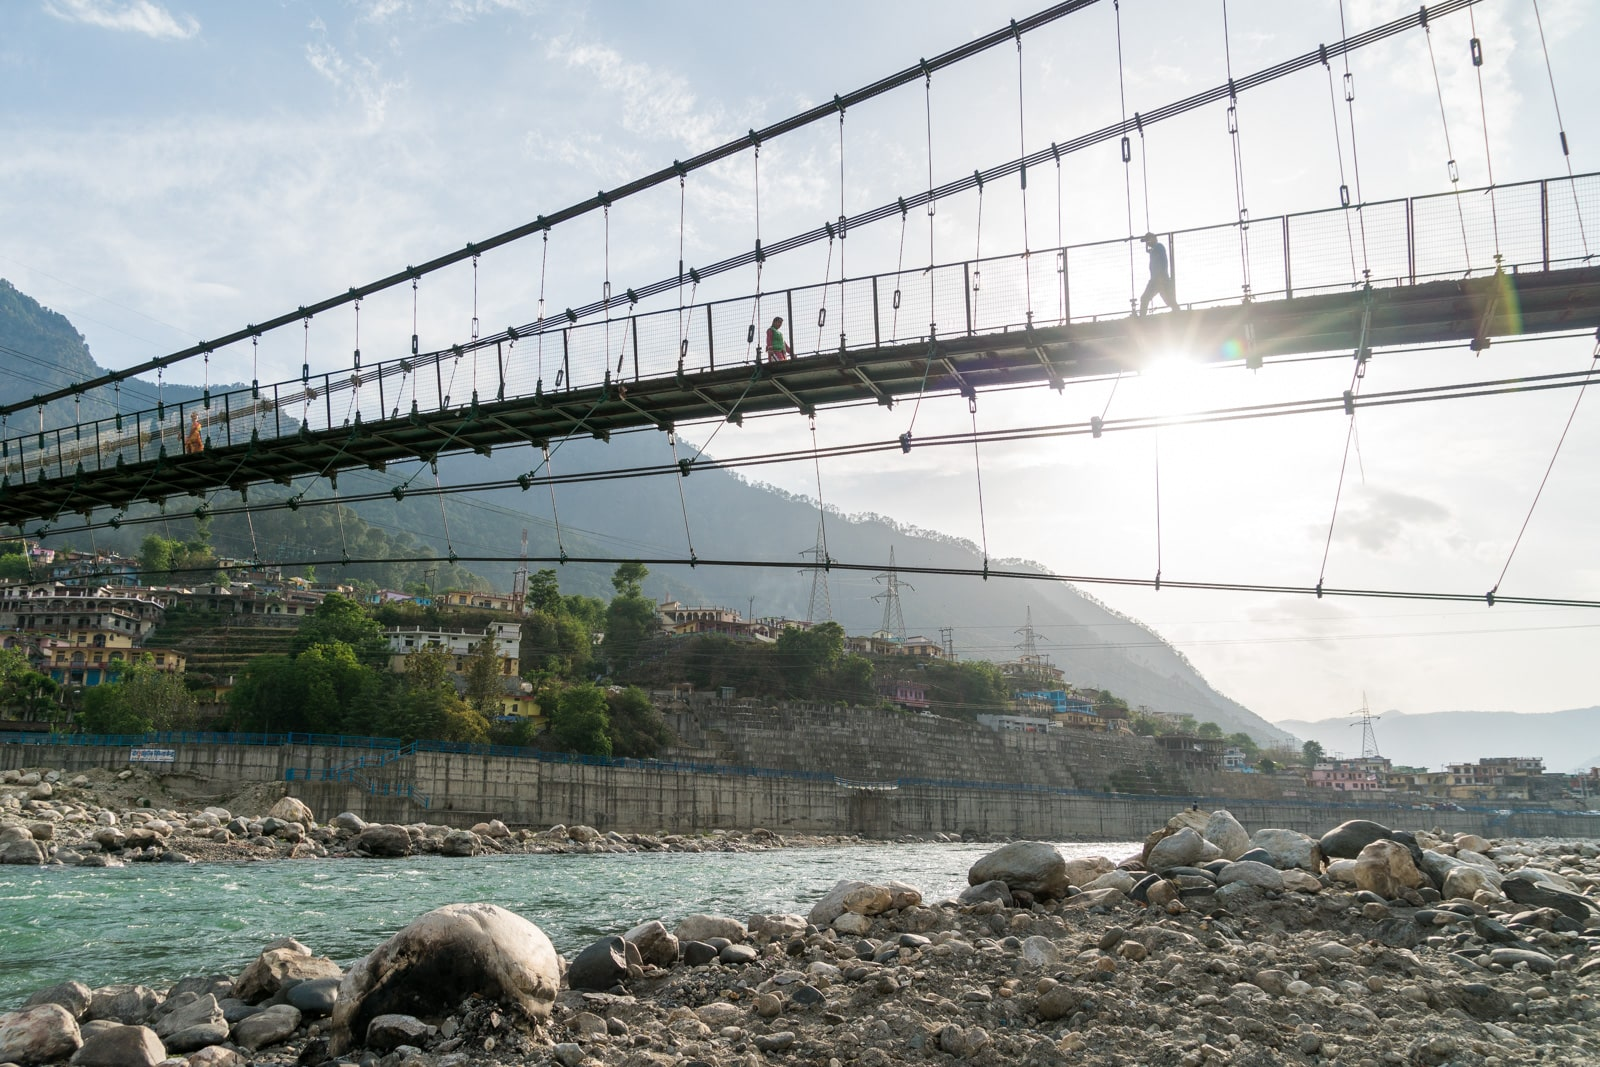 Guide to trekking to the start of the Ganges River in Uttarakhand, India - Bridge spanning the Bhagirathi River in Uttarkashi - Lost With Purpose travel blog